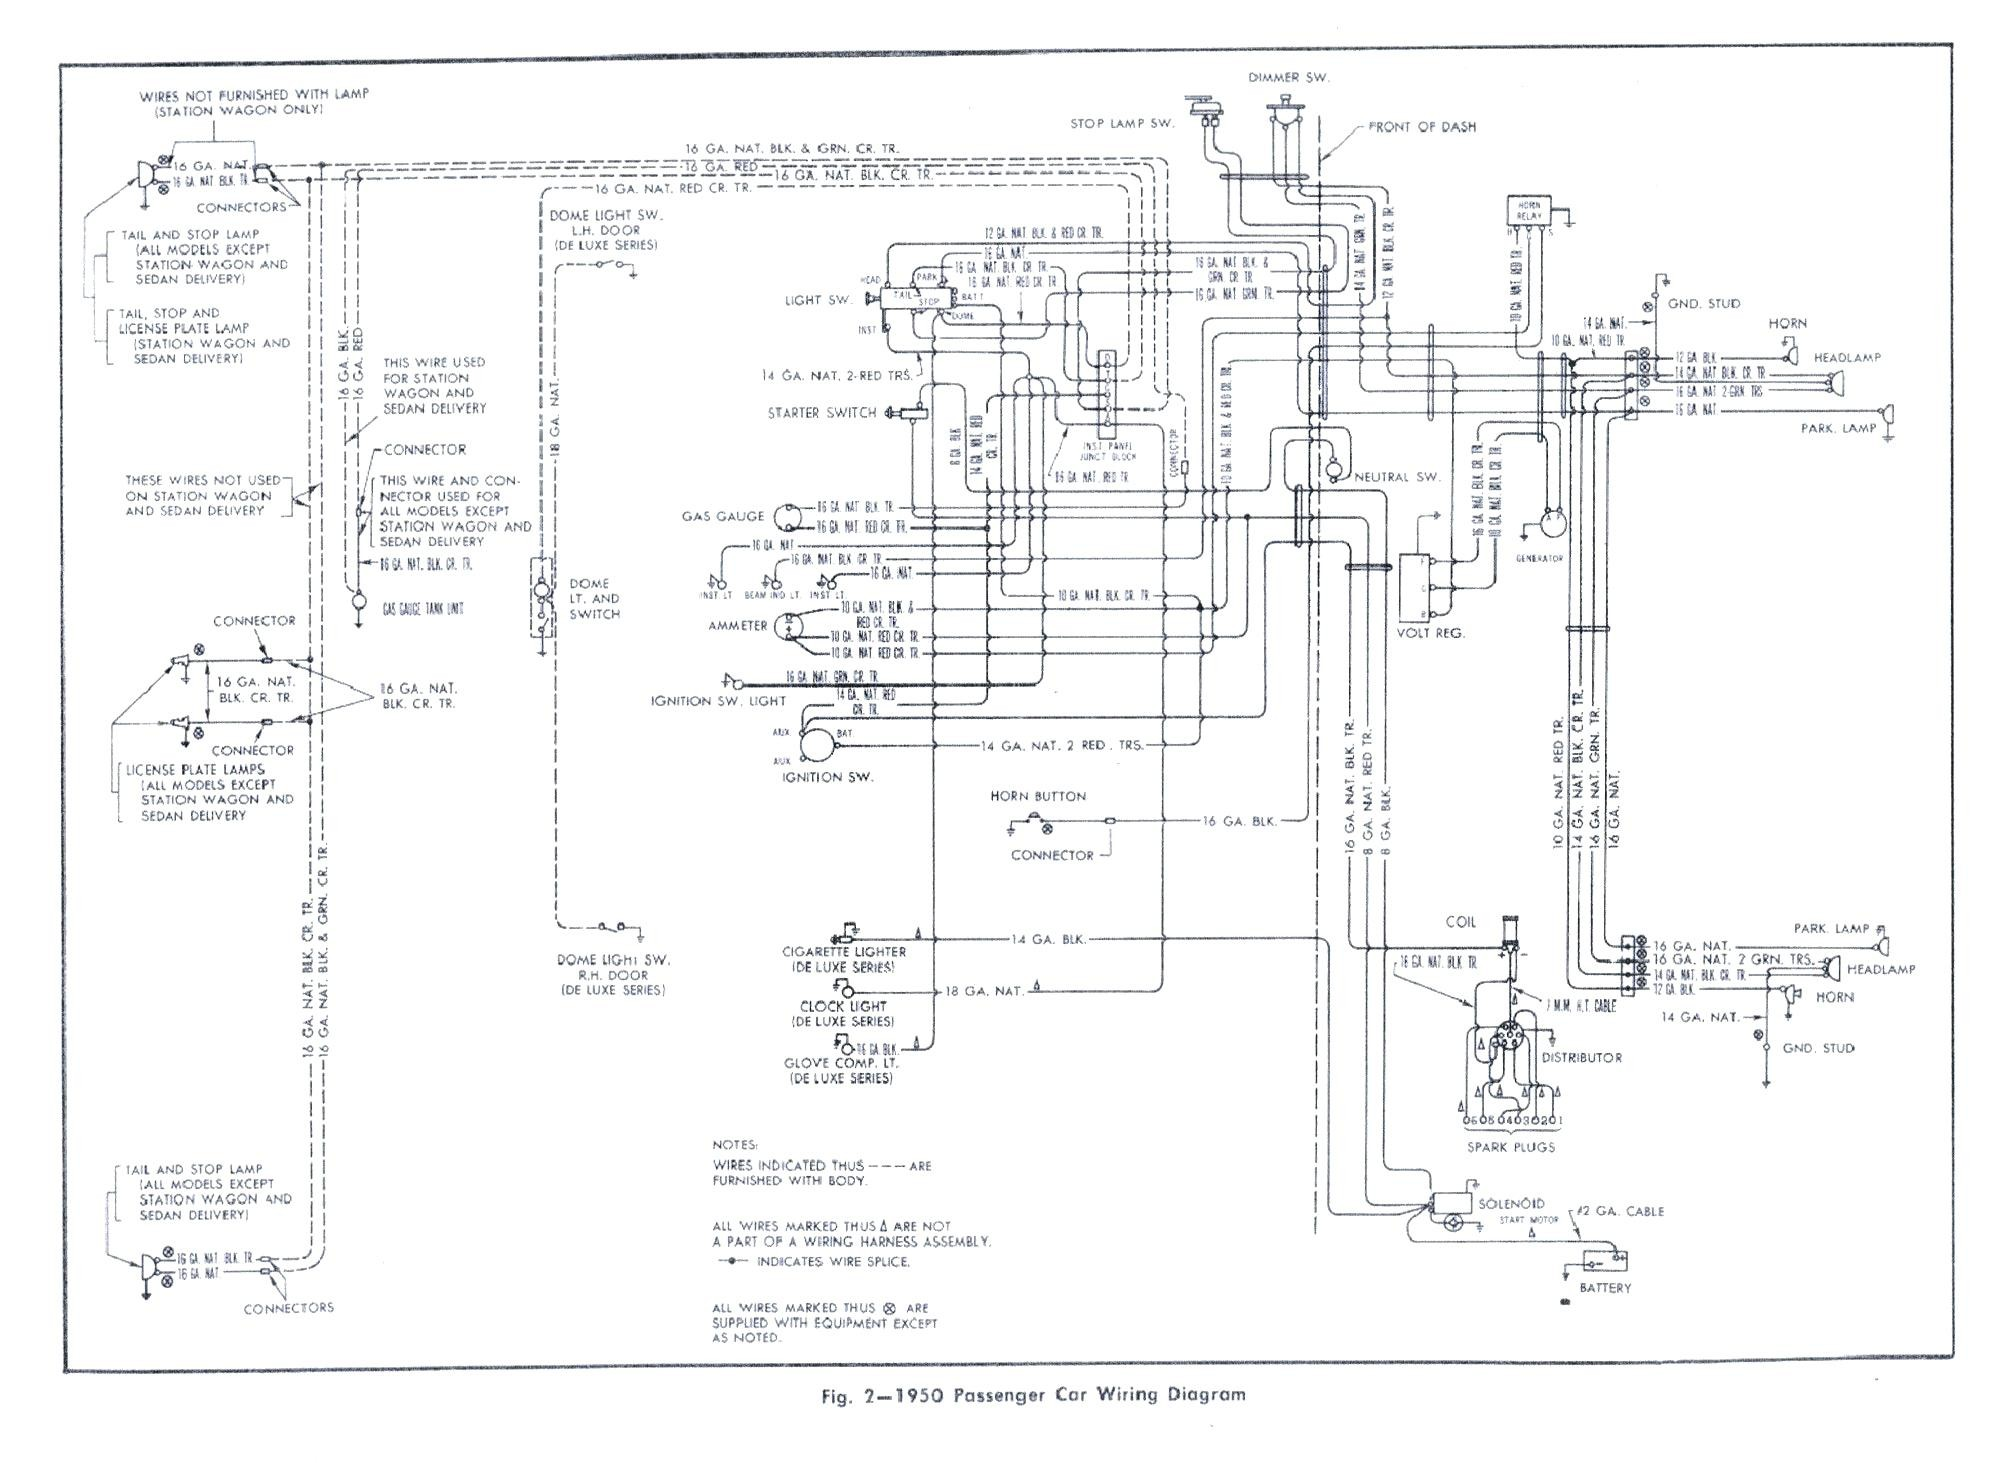 Full Size of Vintage Air Trinary Switch Wiring Diagram Archived Wiring Diagram Category With Post